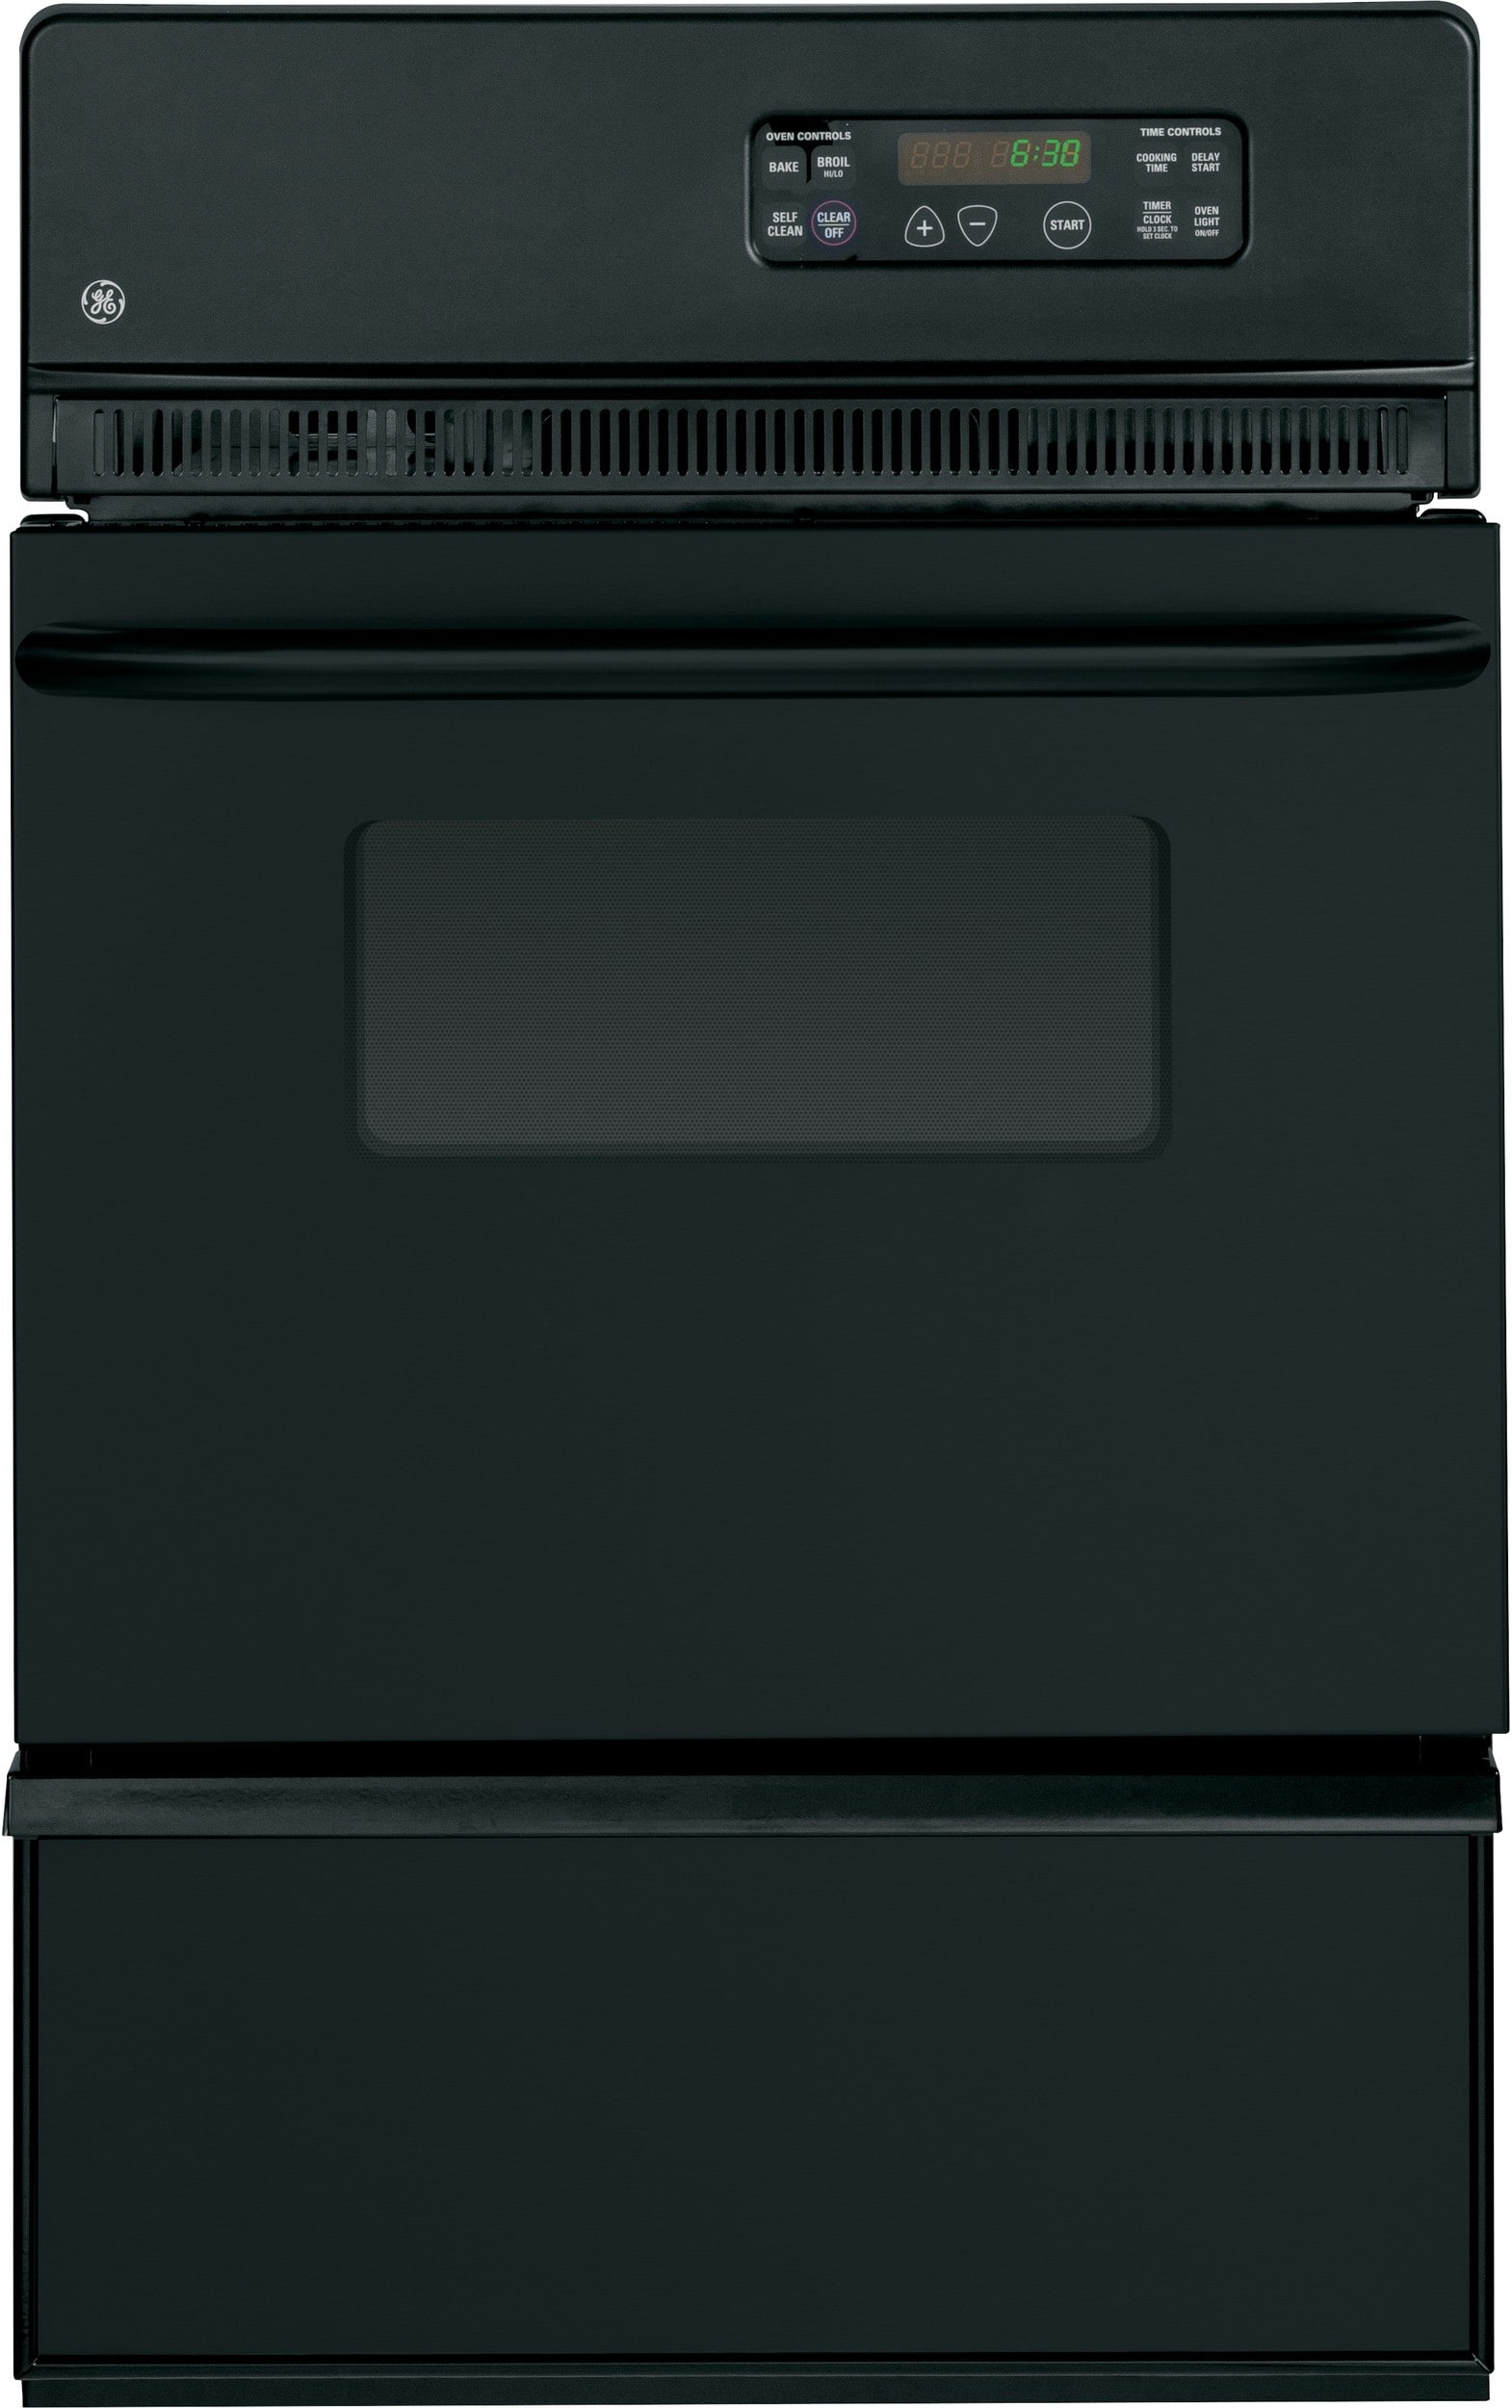 Ge Jgrp20bejbb 24 Inch Single Gas Wall Oven With 2 8 Cu